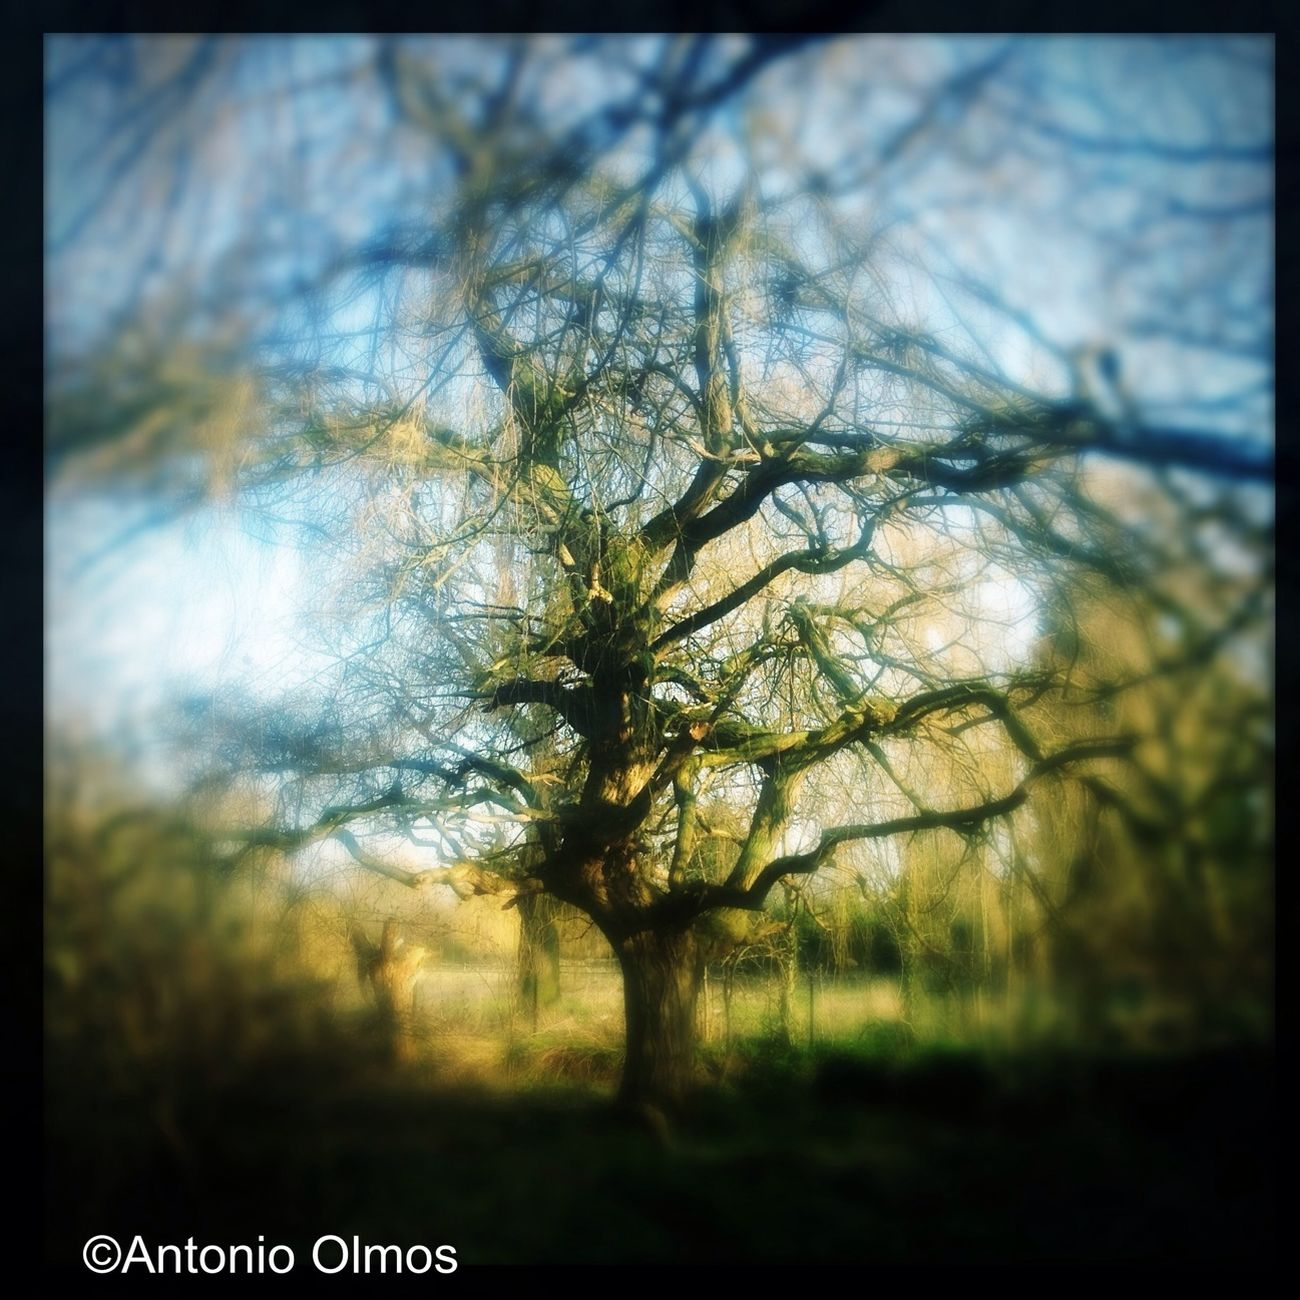 My favourite tree. With smaller watermark.